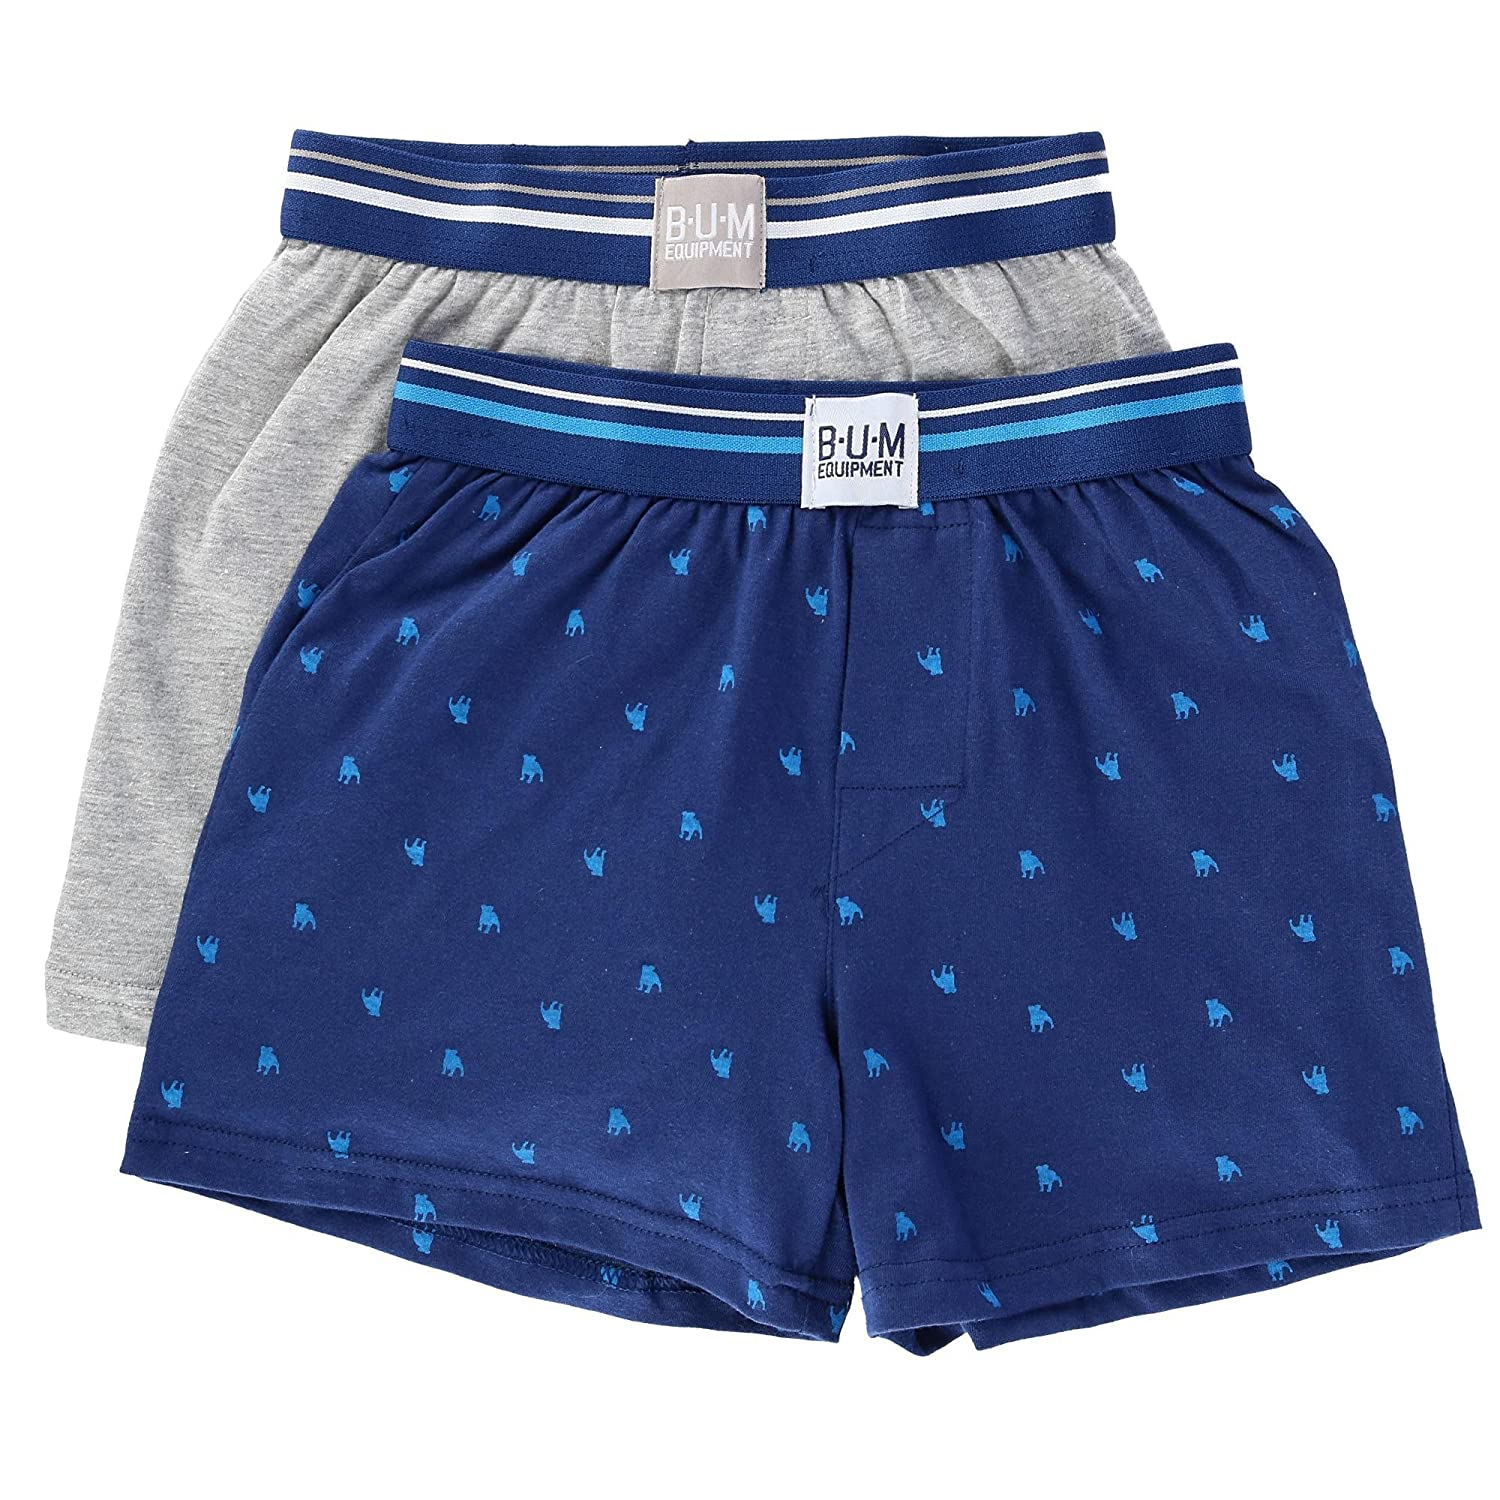 B.U.M. Boy's Knit Boxer Short Underwear (2 Pair Pack)